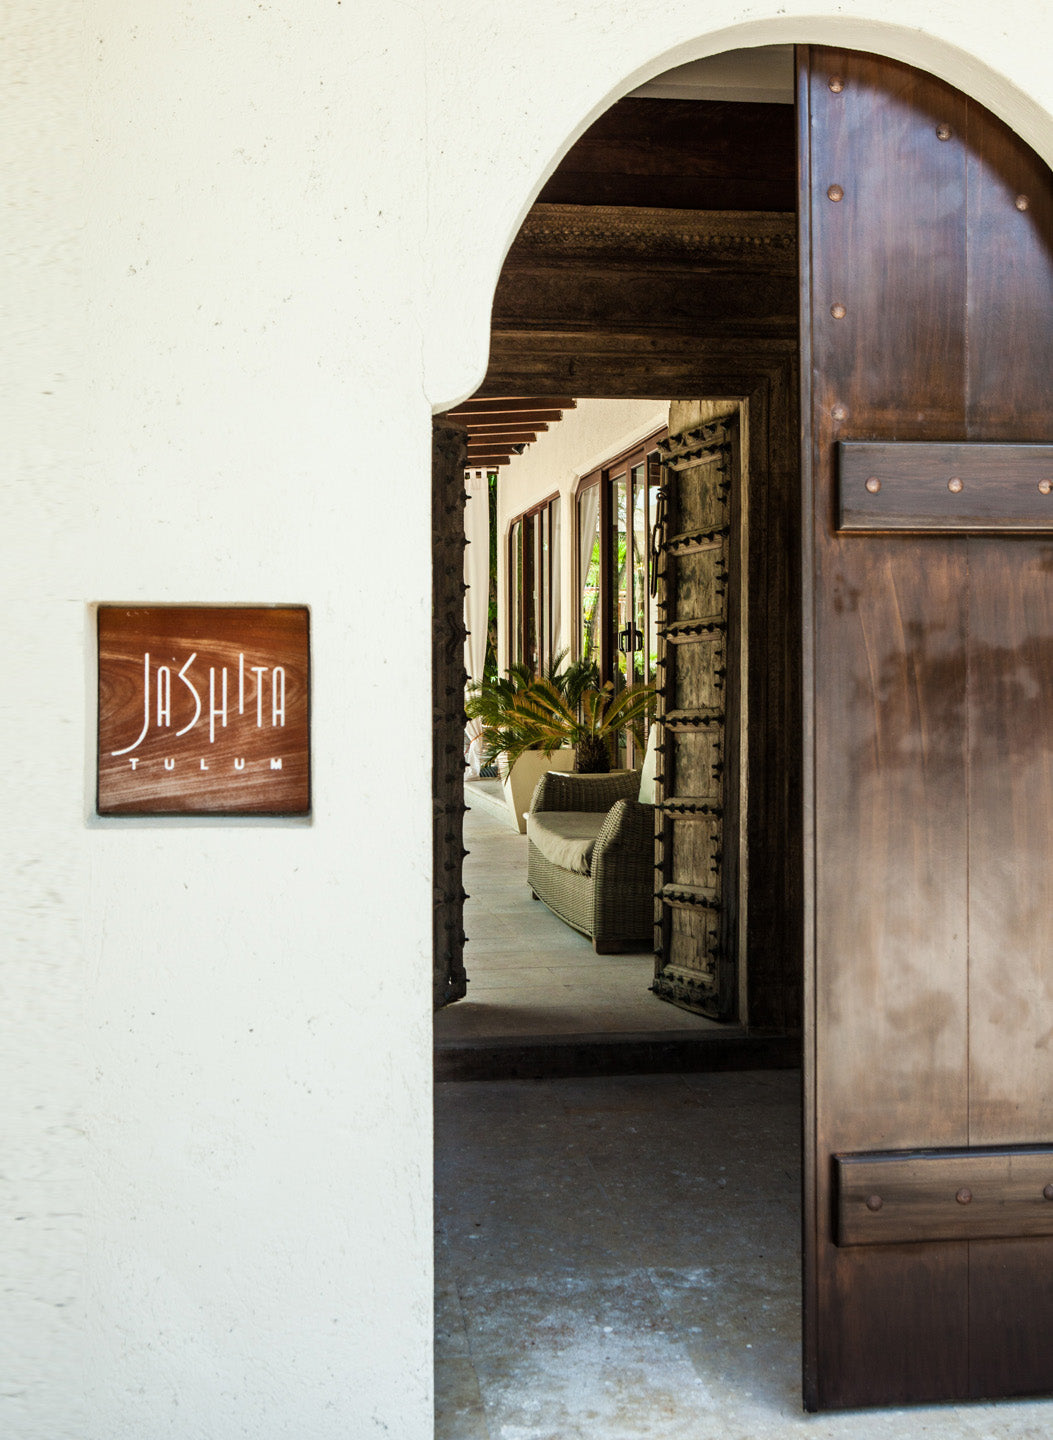 Jashita Hotel, Tulum - close up of hotel entrance with wooden Jashita sign and large dark wooden doors